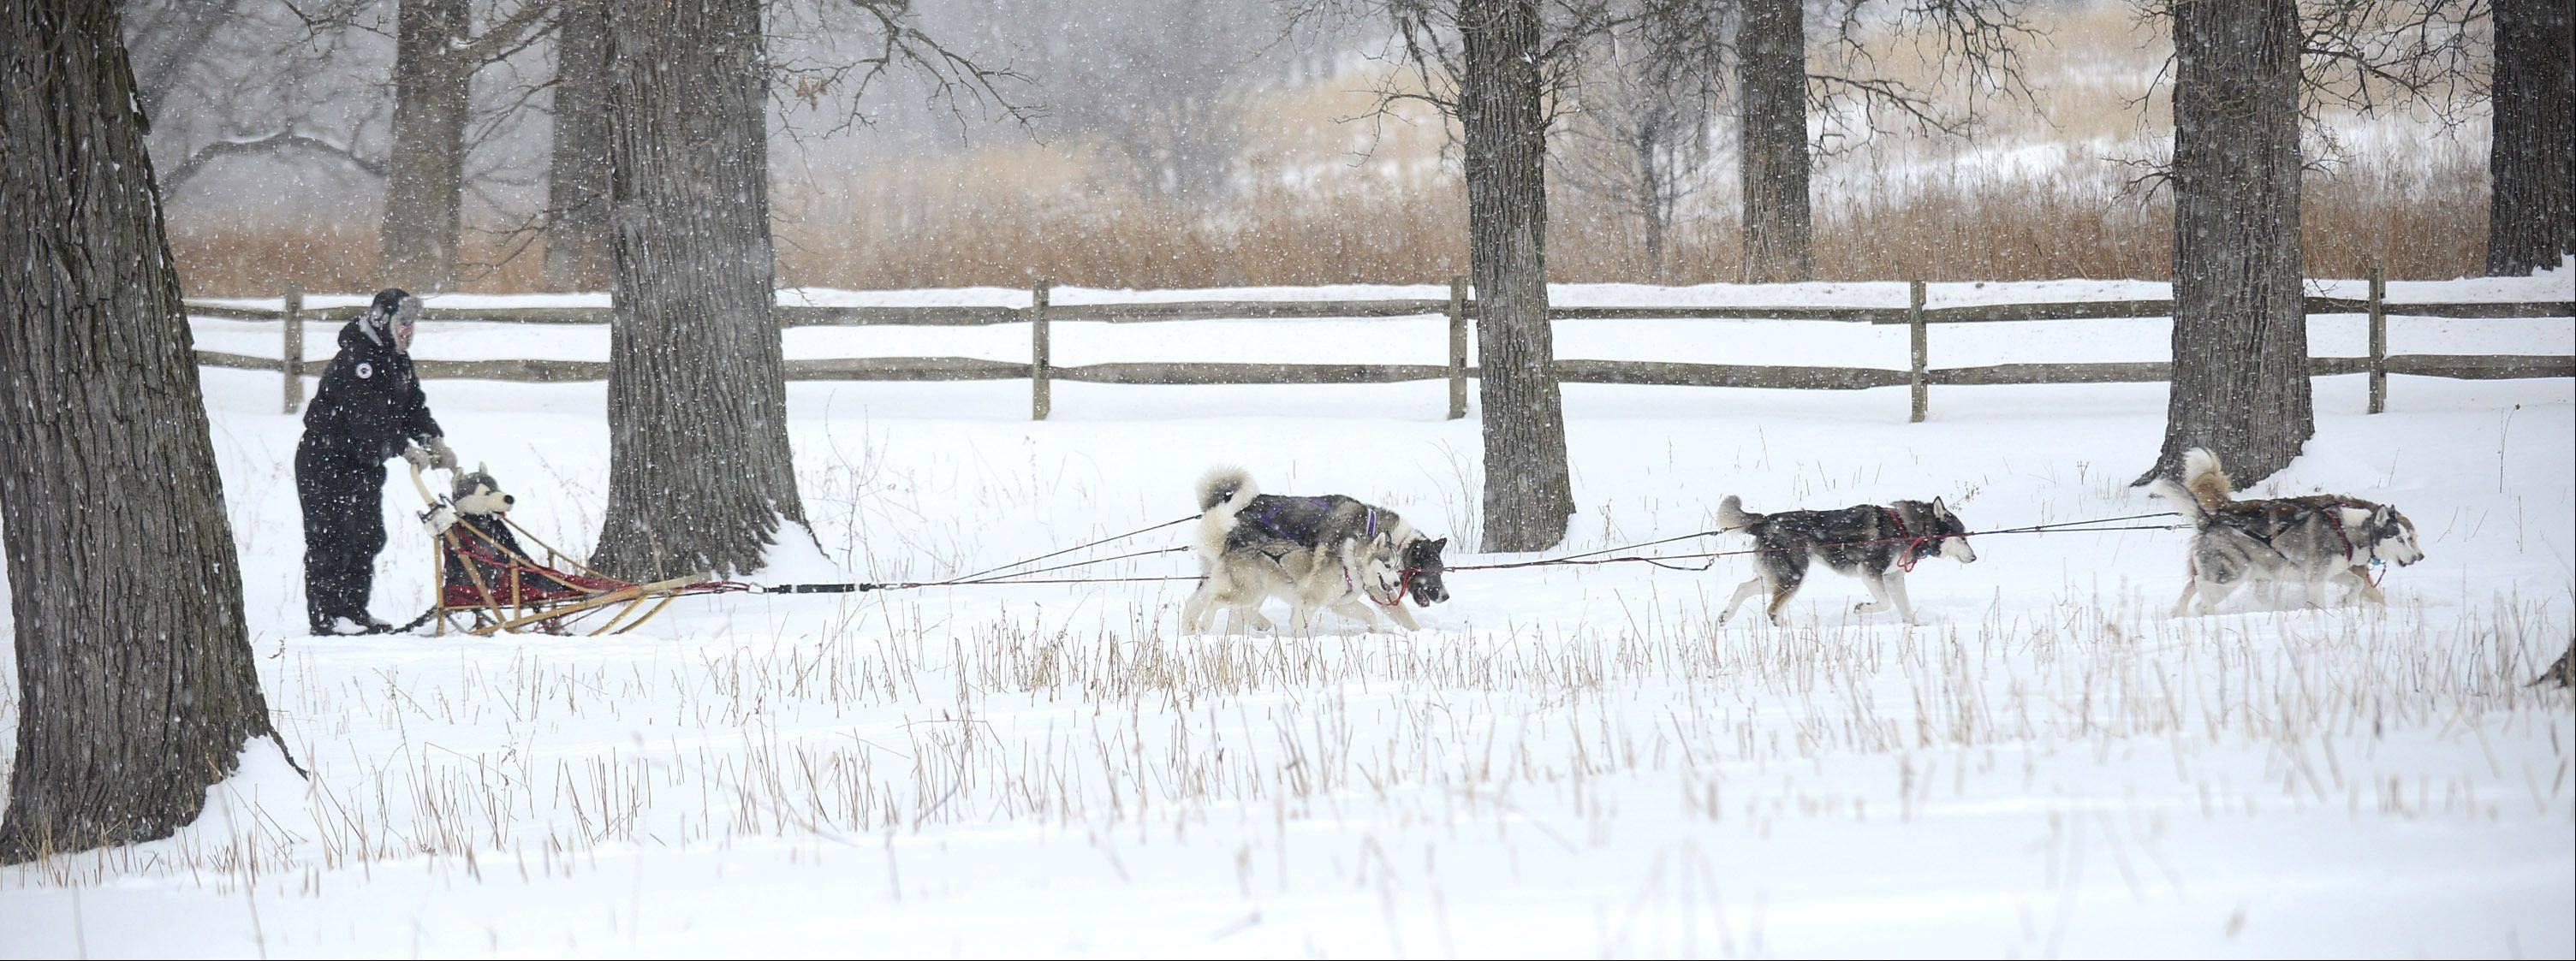 Jason Hussong of Machesney Park leads the Free Spirit Siberian Rescue sled demo team at Hickory Knolls Discovery Center in St. Charles on Saturday. He brought two teams from the Harvard-based group to share the sport with the public. Most of the dogs are rescues.